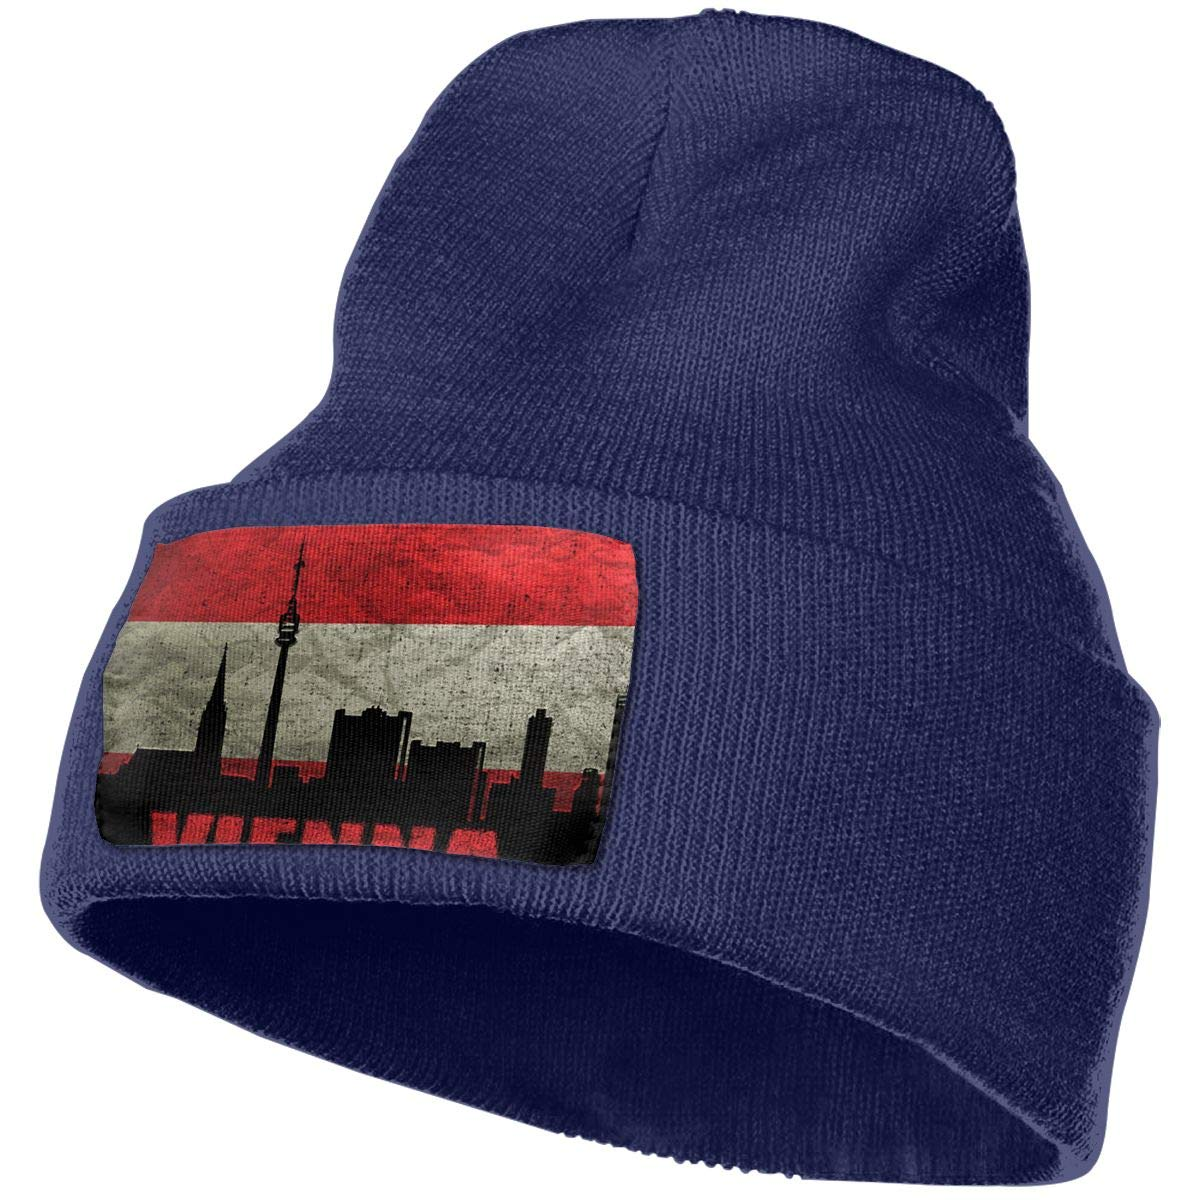 JimHappy Austria Vienna Architecture Hat for Men and Women Winter Warm Hats Knit Slouchy Thick Skull Cap